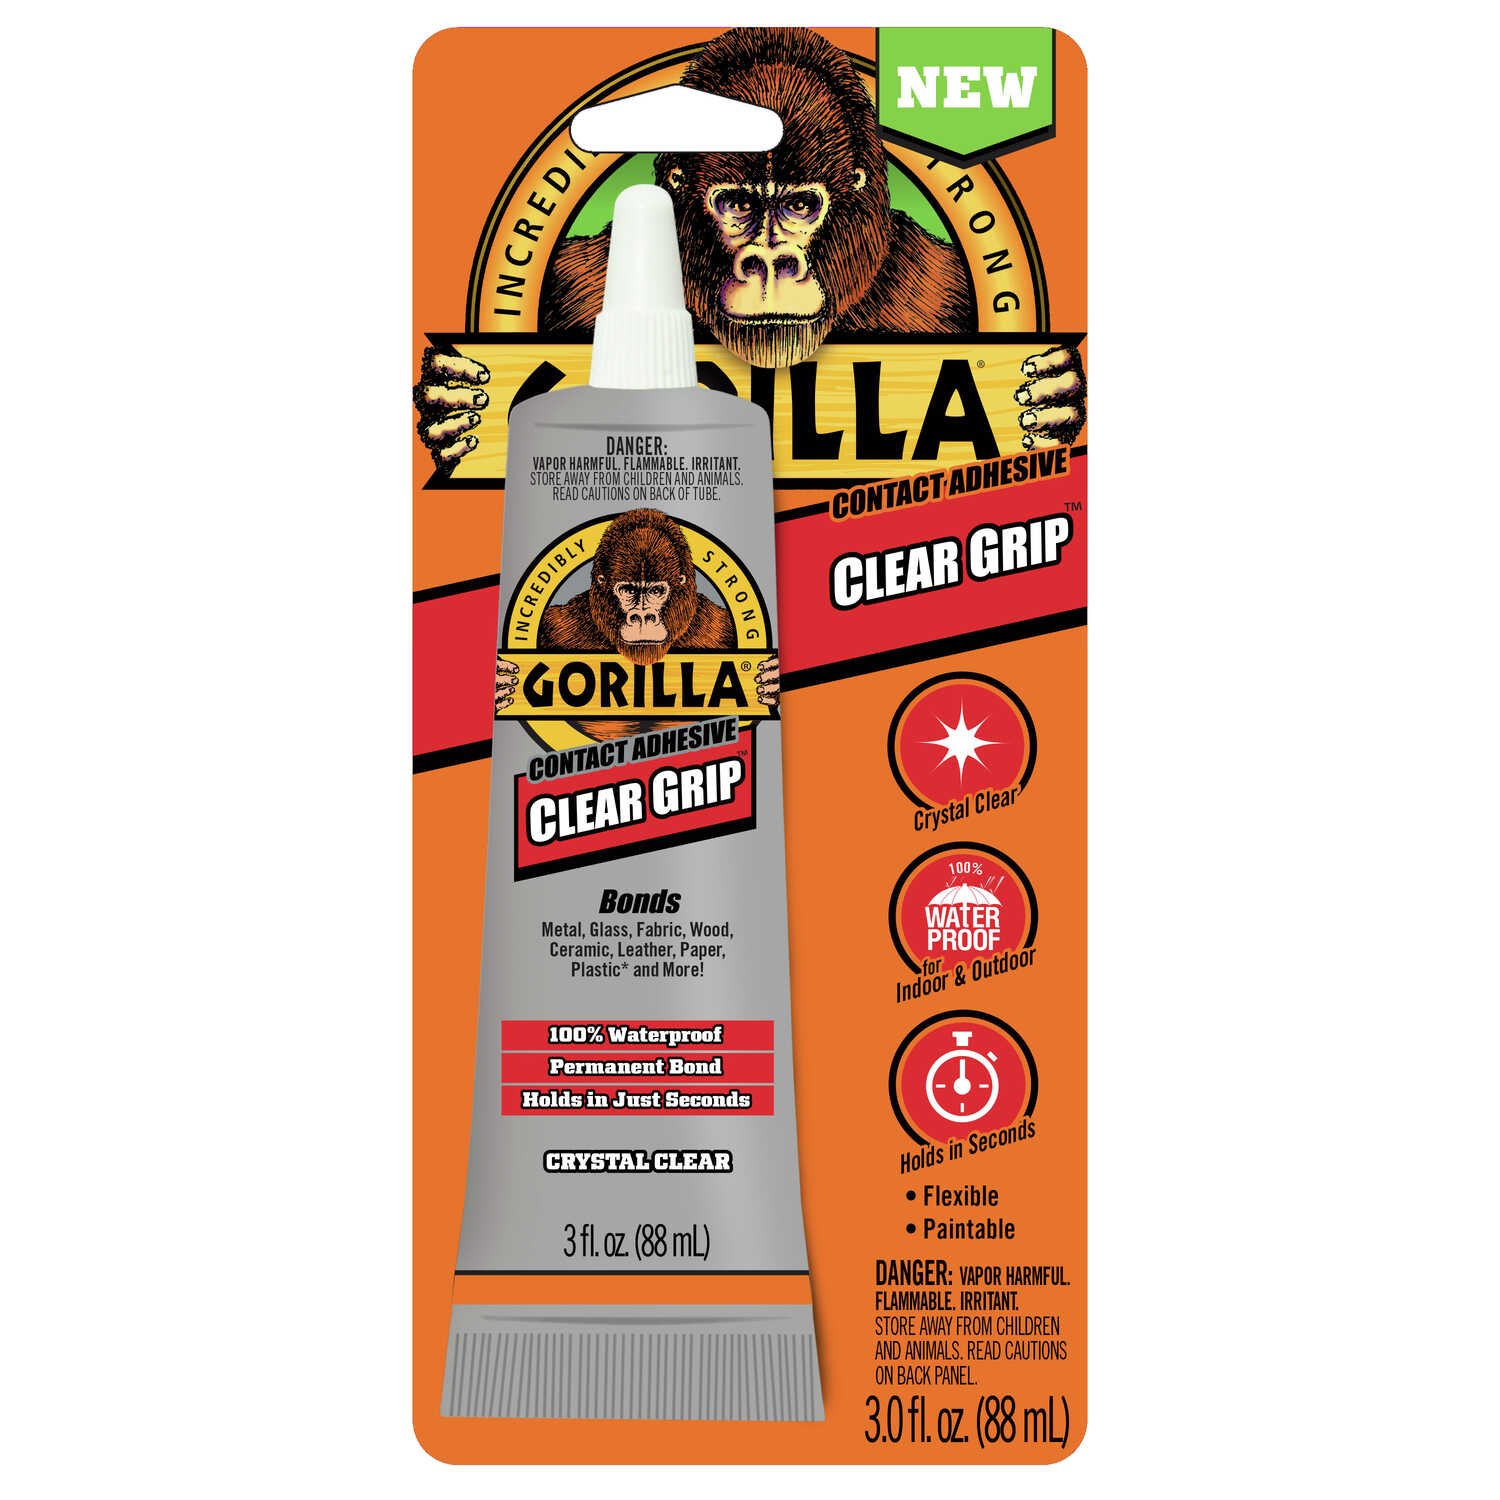 Gorilla  Clear Grip  High Strength  Contact Adhesive  3 oz.